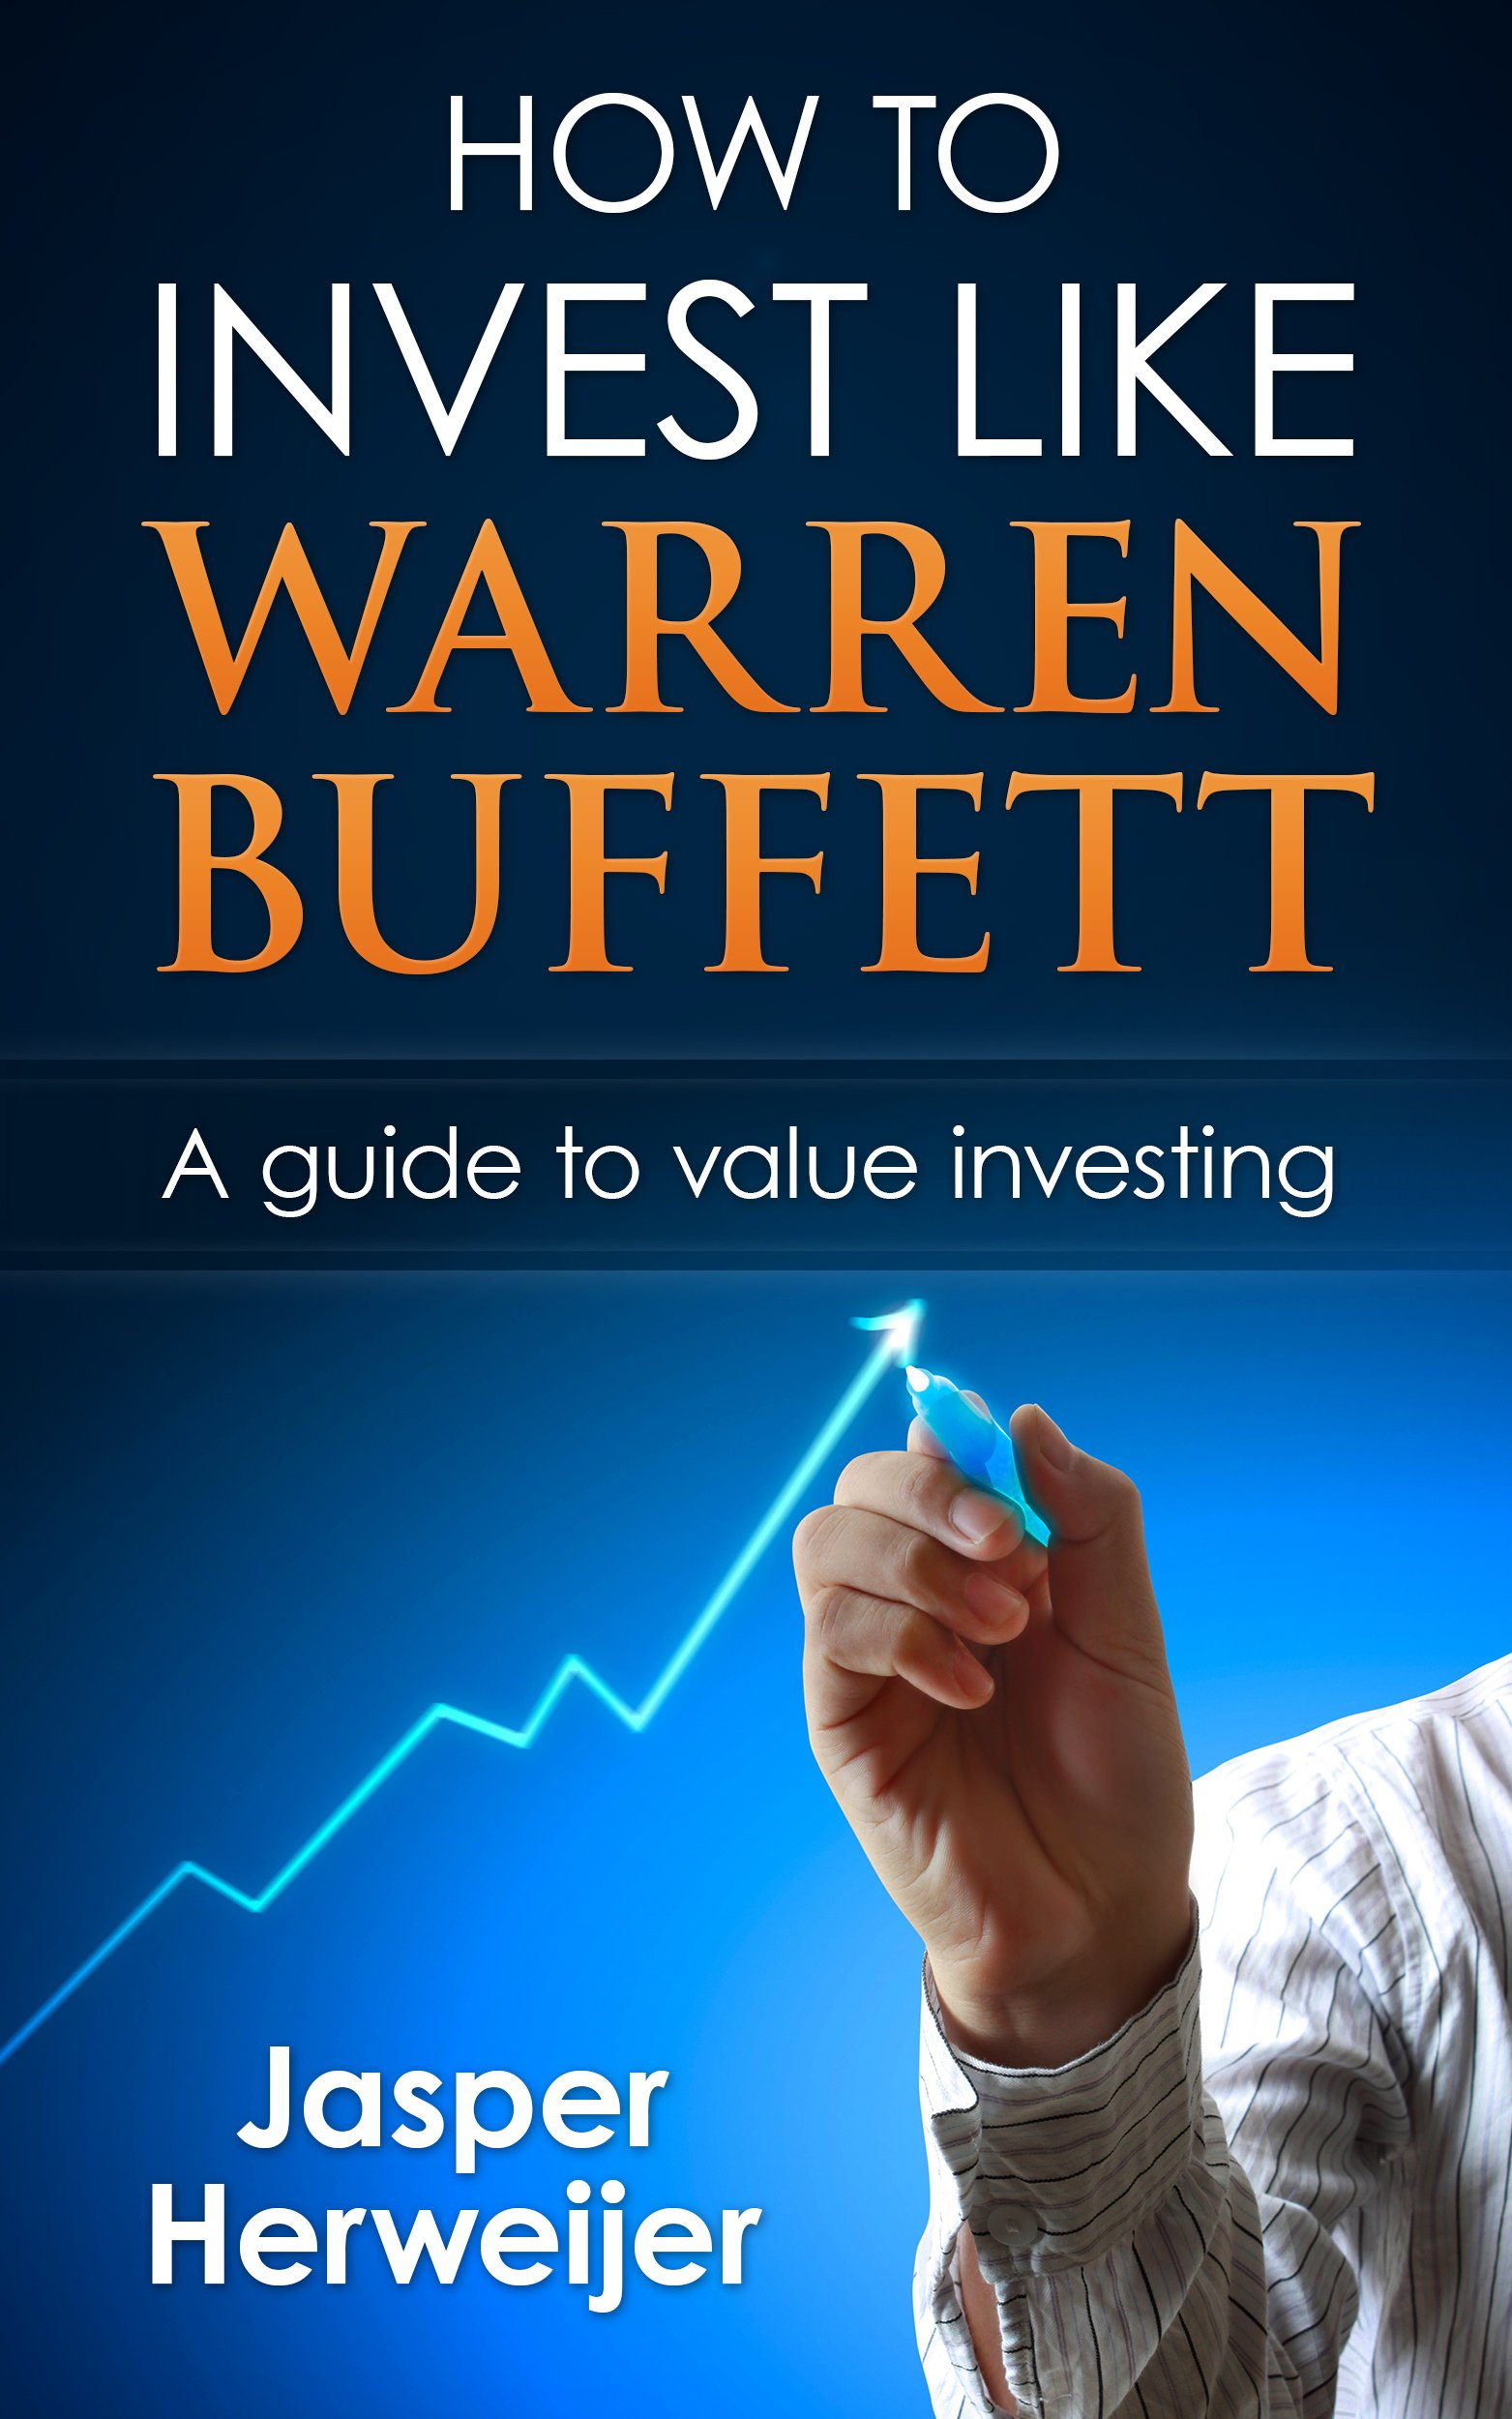 Warren Buffett: How to invest like Warren Buffett: A Proven Step By Step Guide To Value Investing: How To Get Rich Through Value Investing The Warren Buffett ... Buffet Portfolio, Warren Buffet's way)